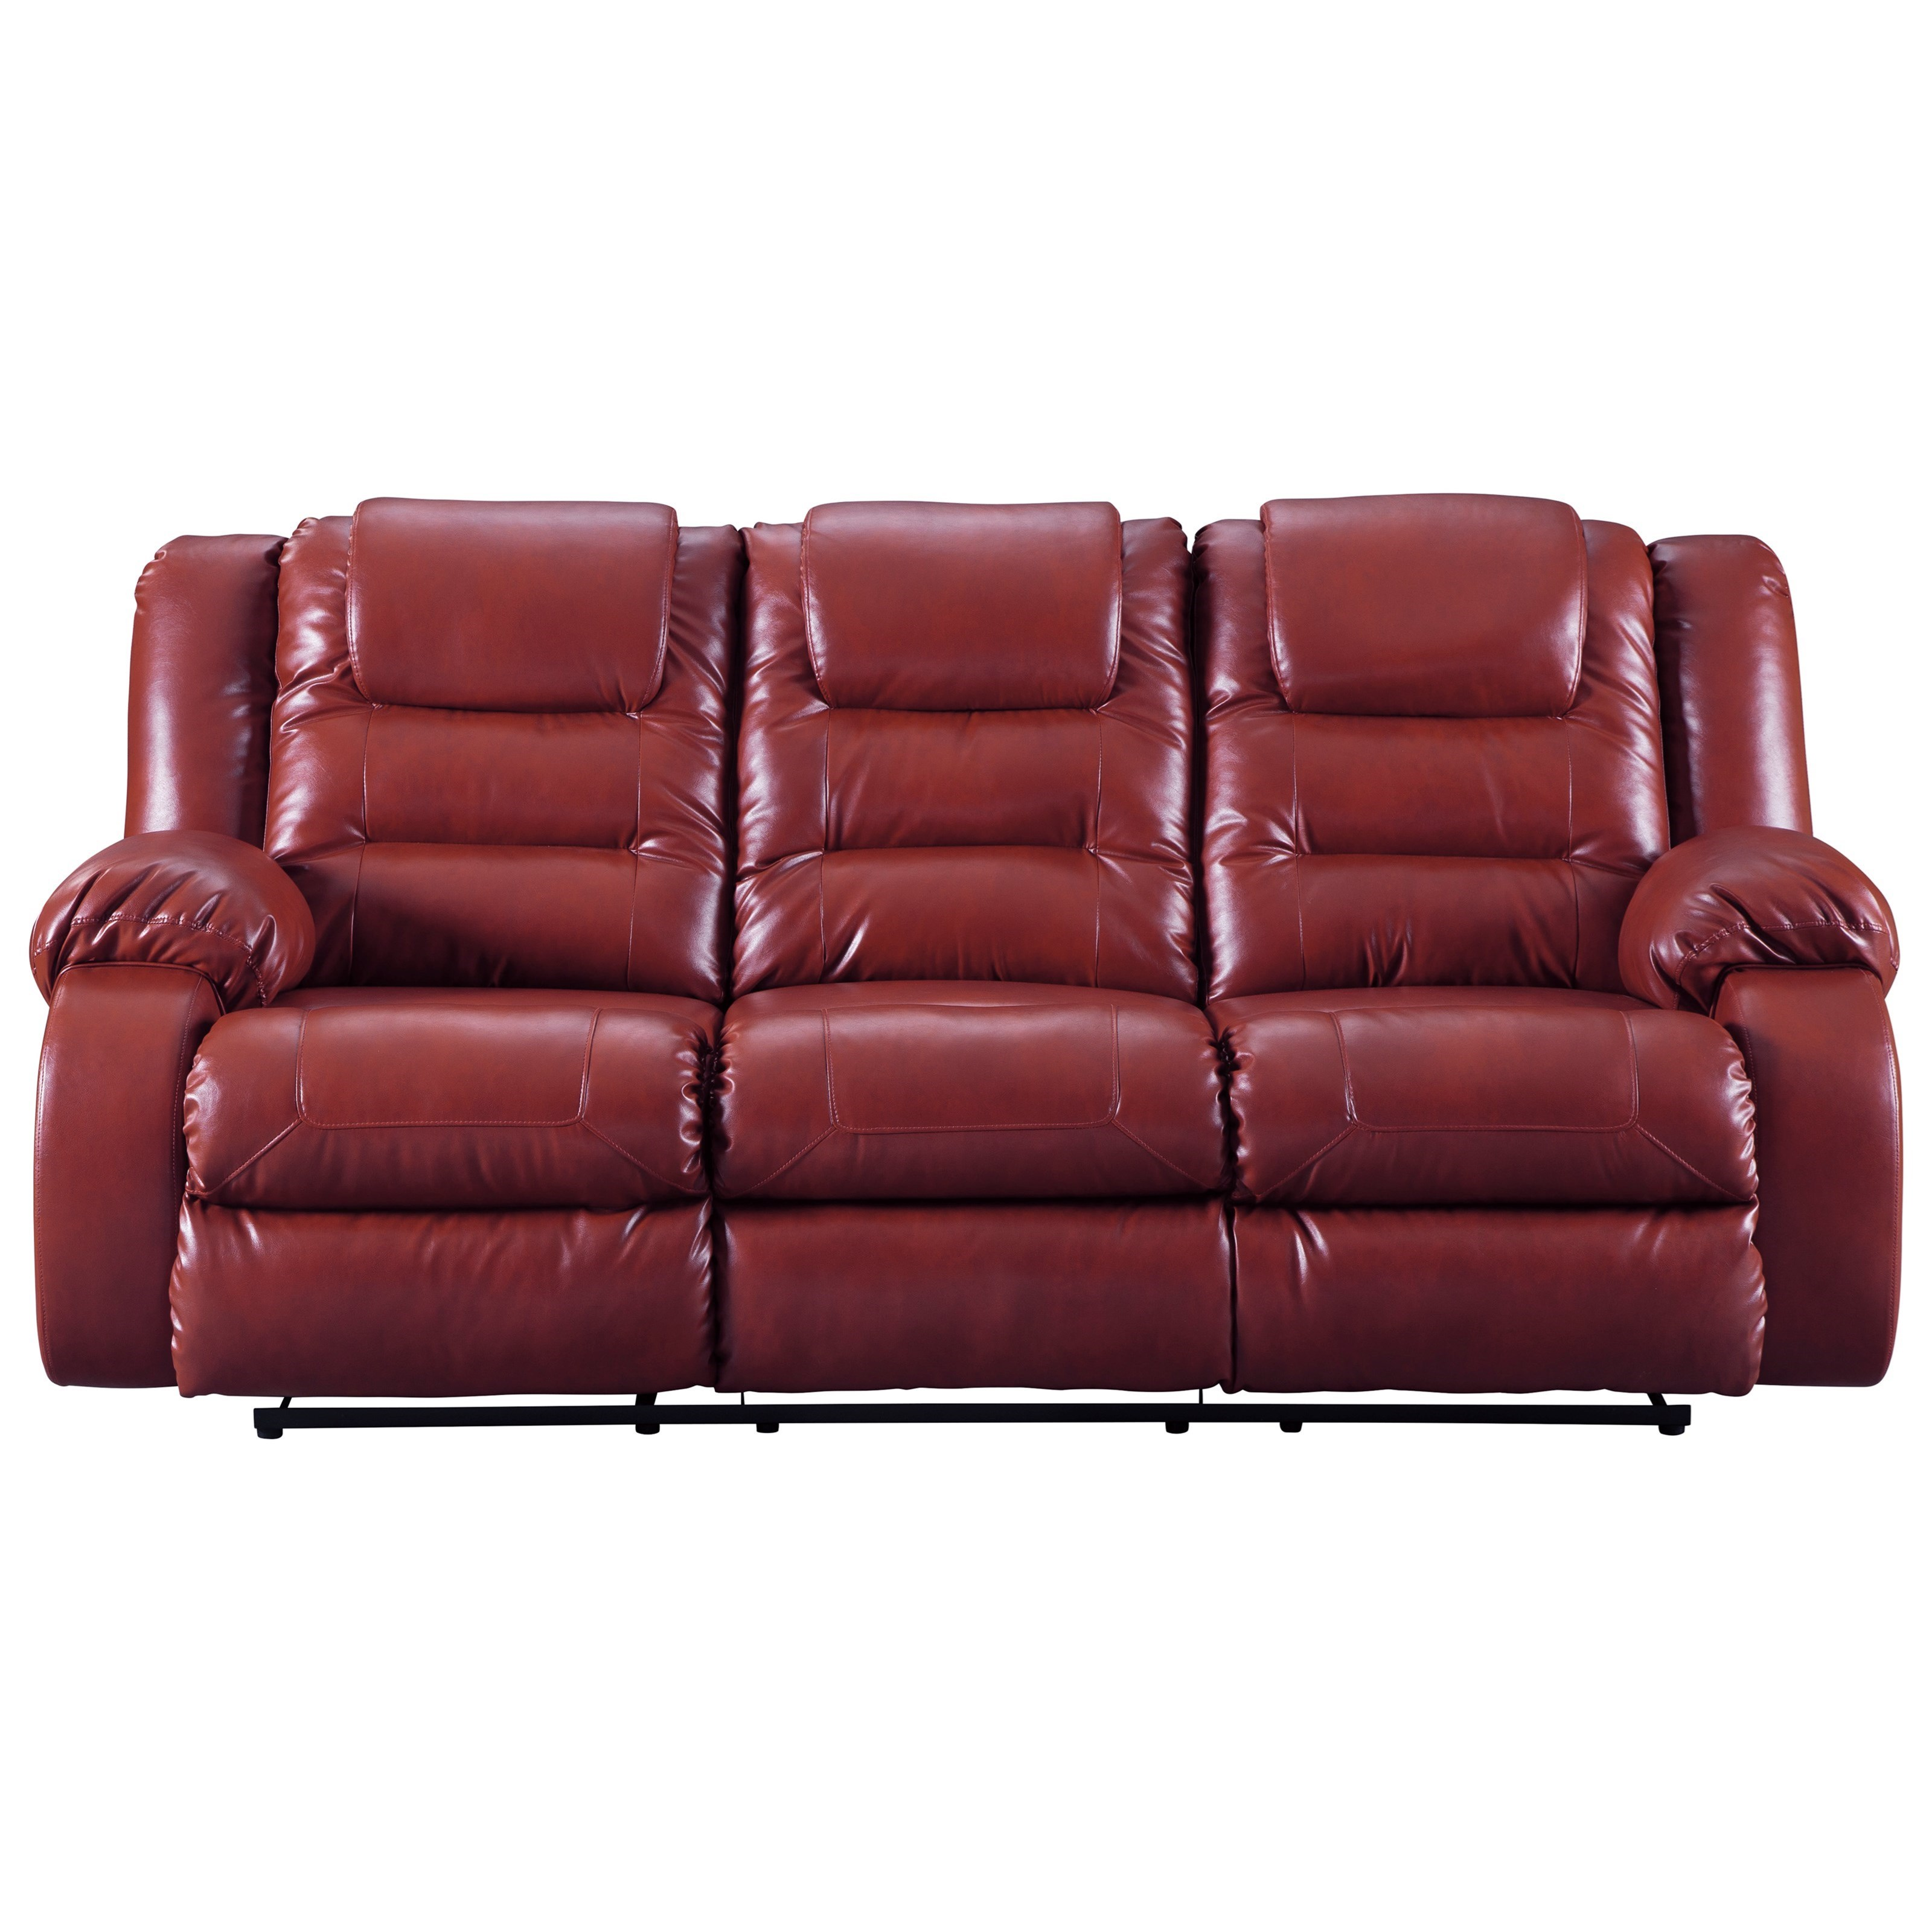 Vacherie Reclining Sofa by Signature Design by Ashley at Household Furniture